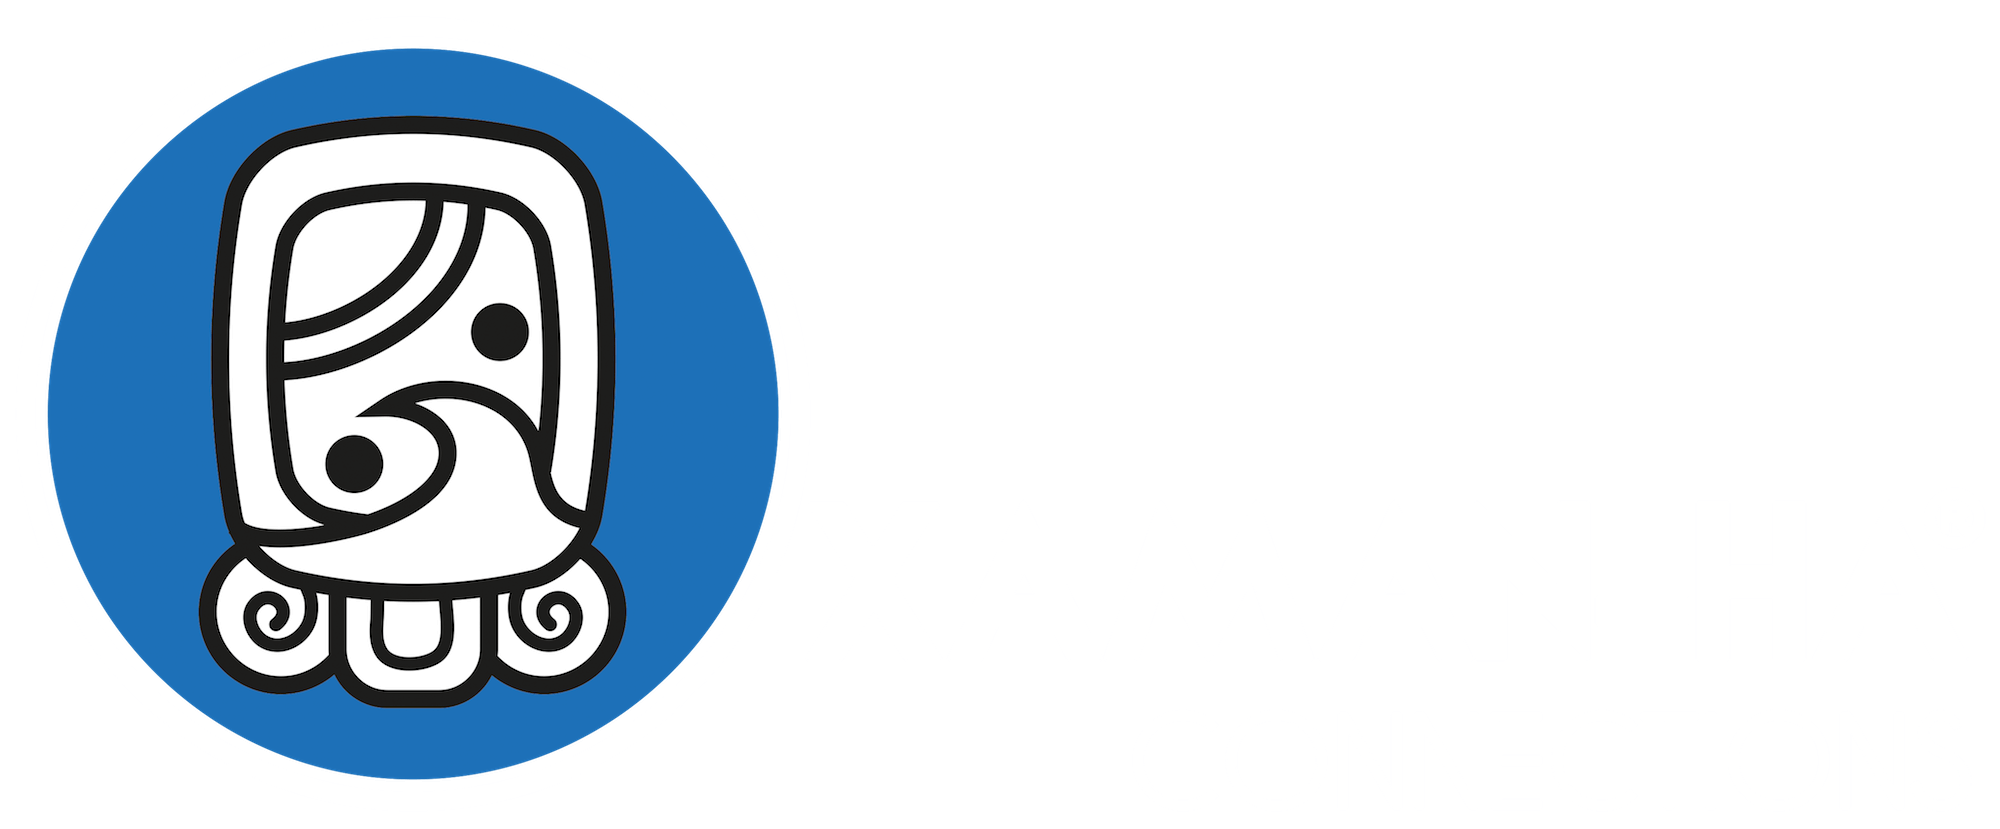 Xaman-ha Connections